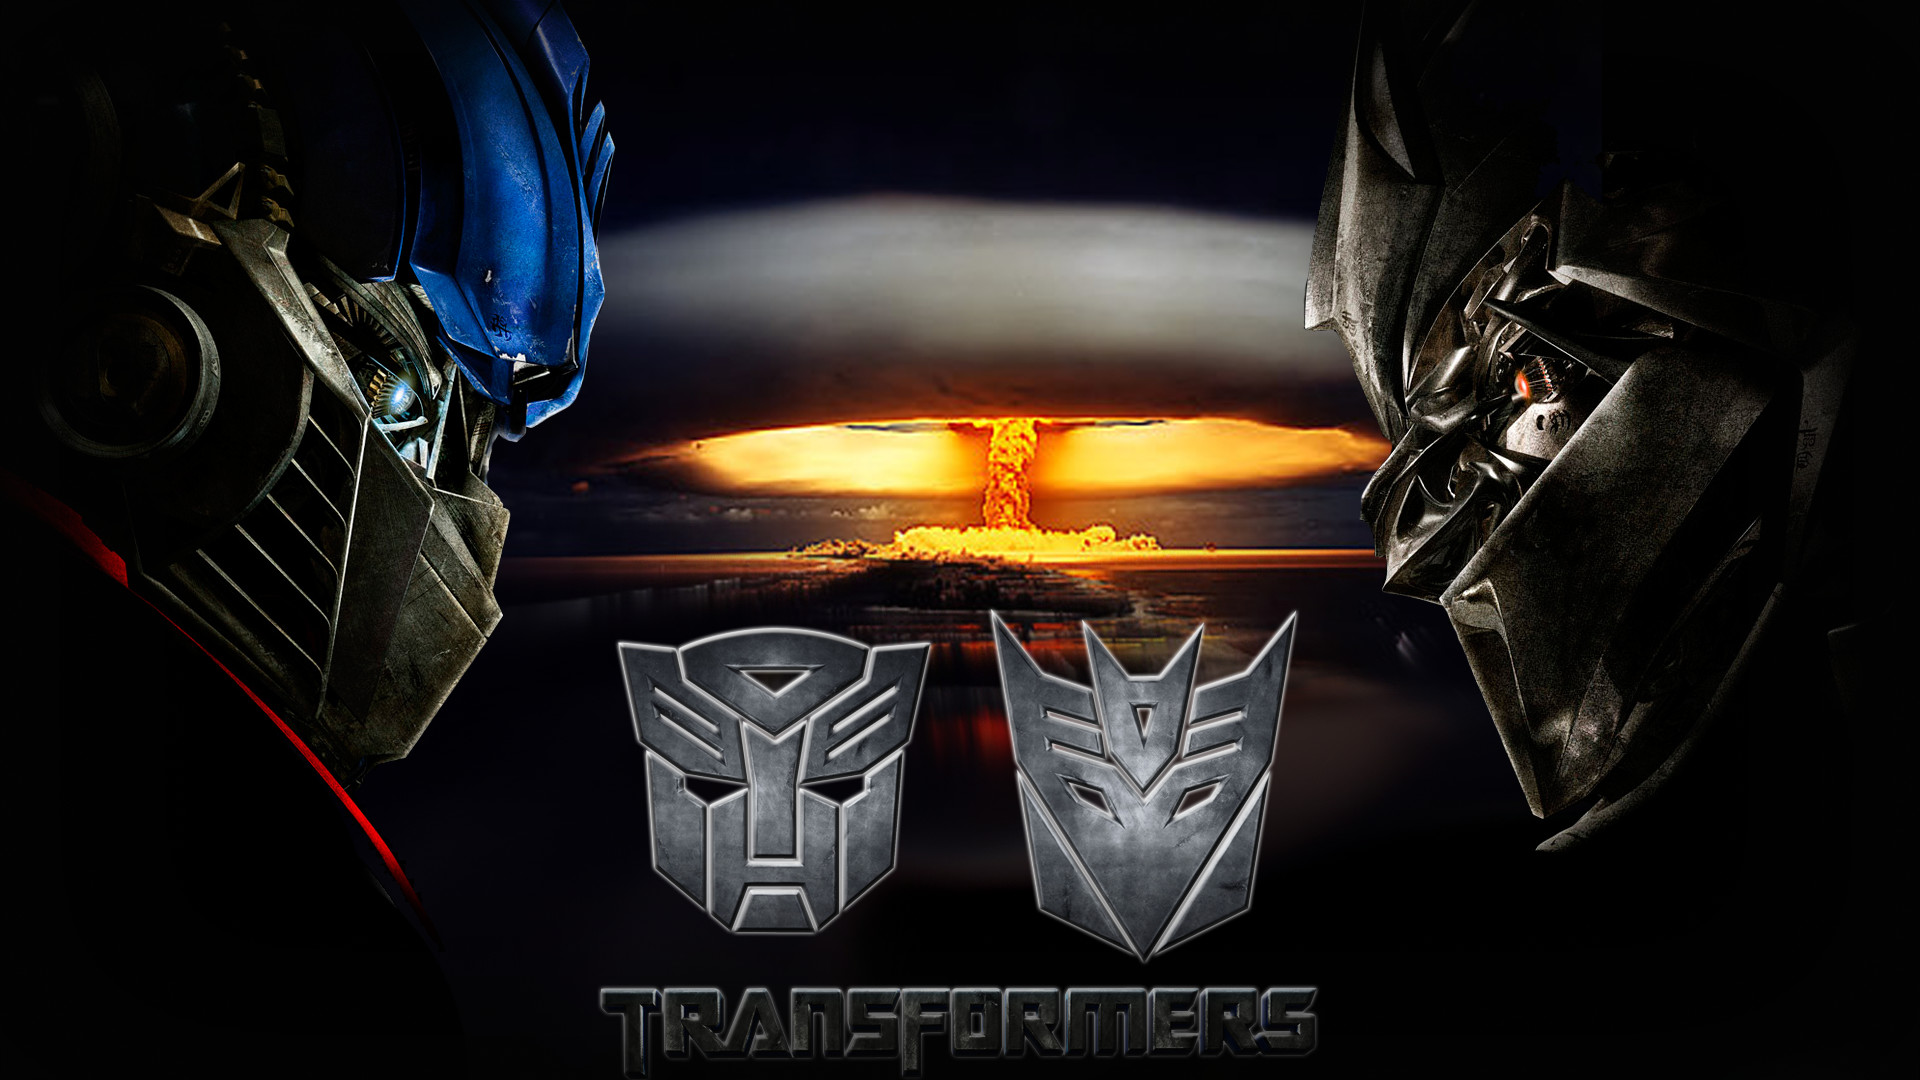 New Transformers Wallpapers, View #5113359 Transformers Wallpapers